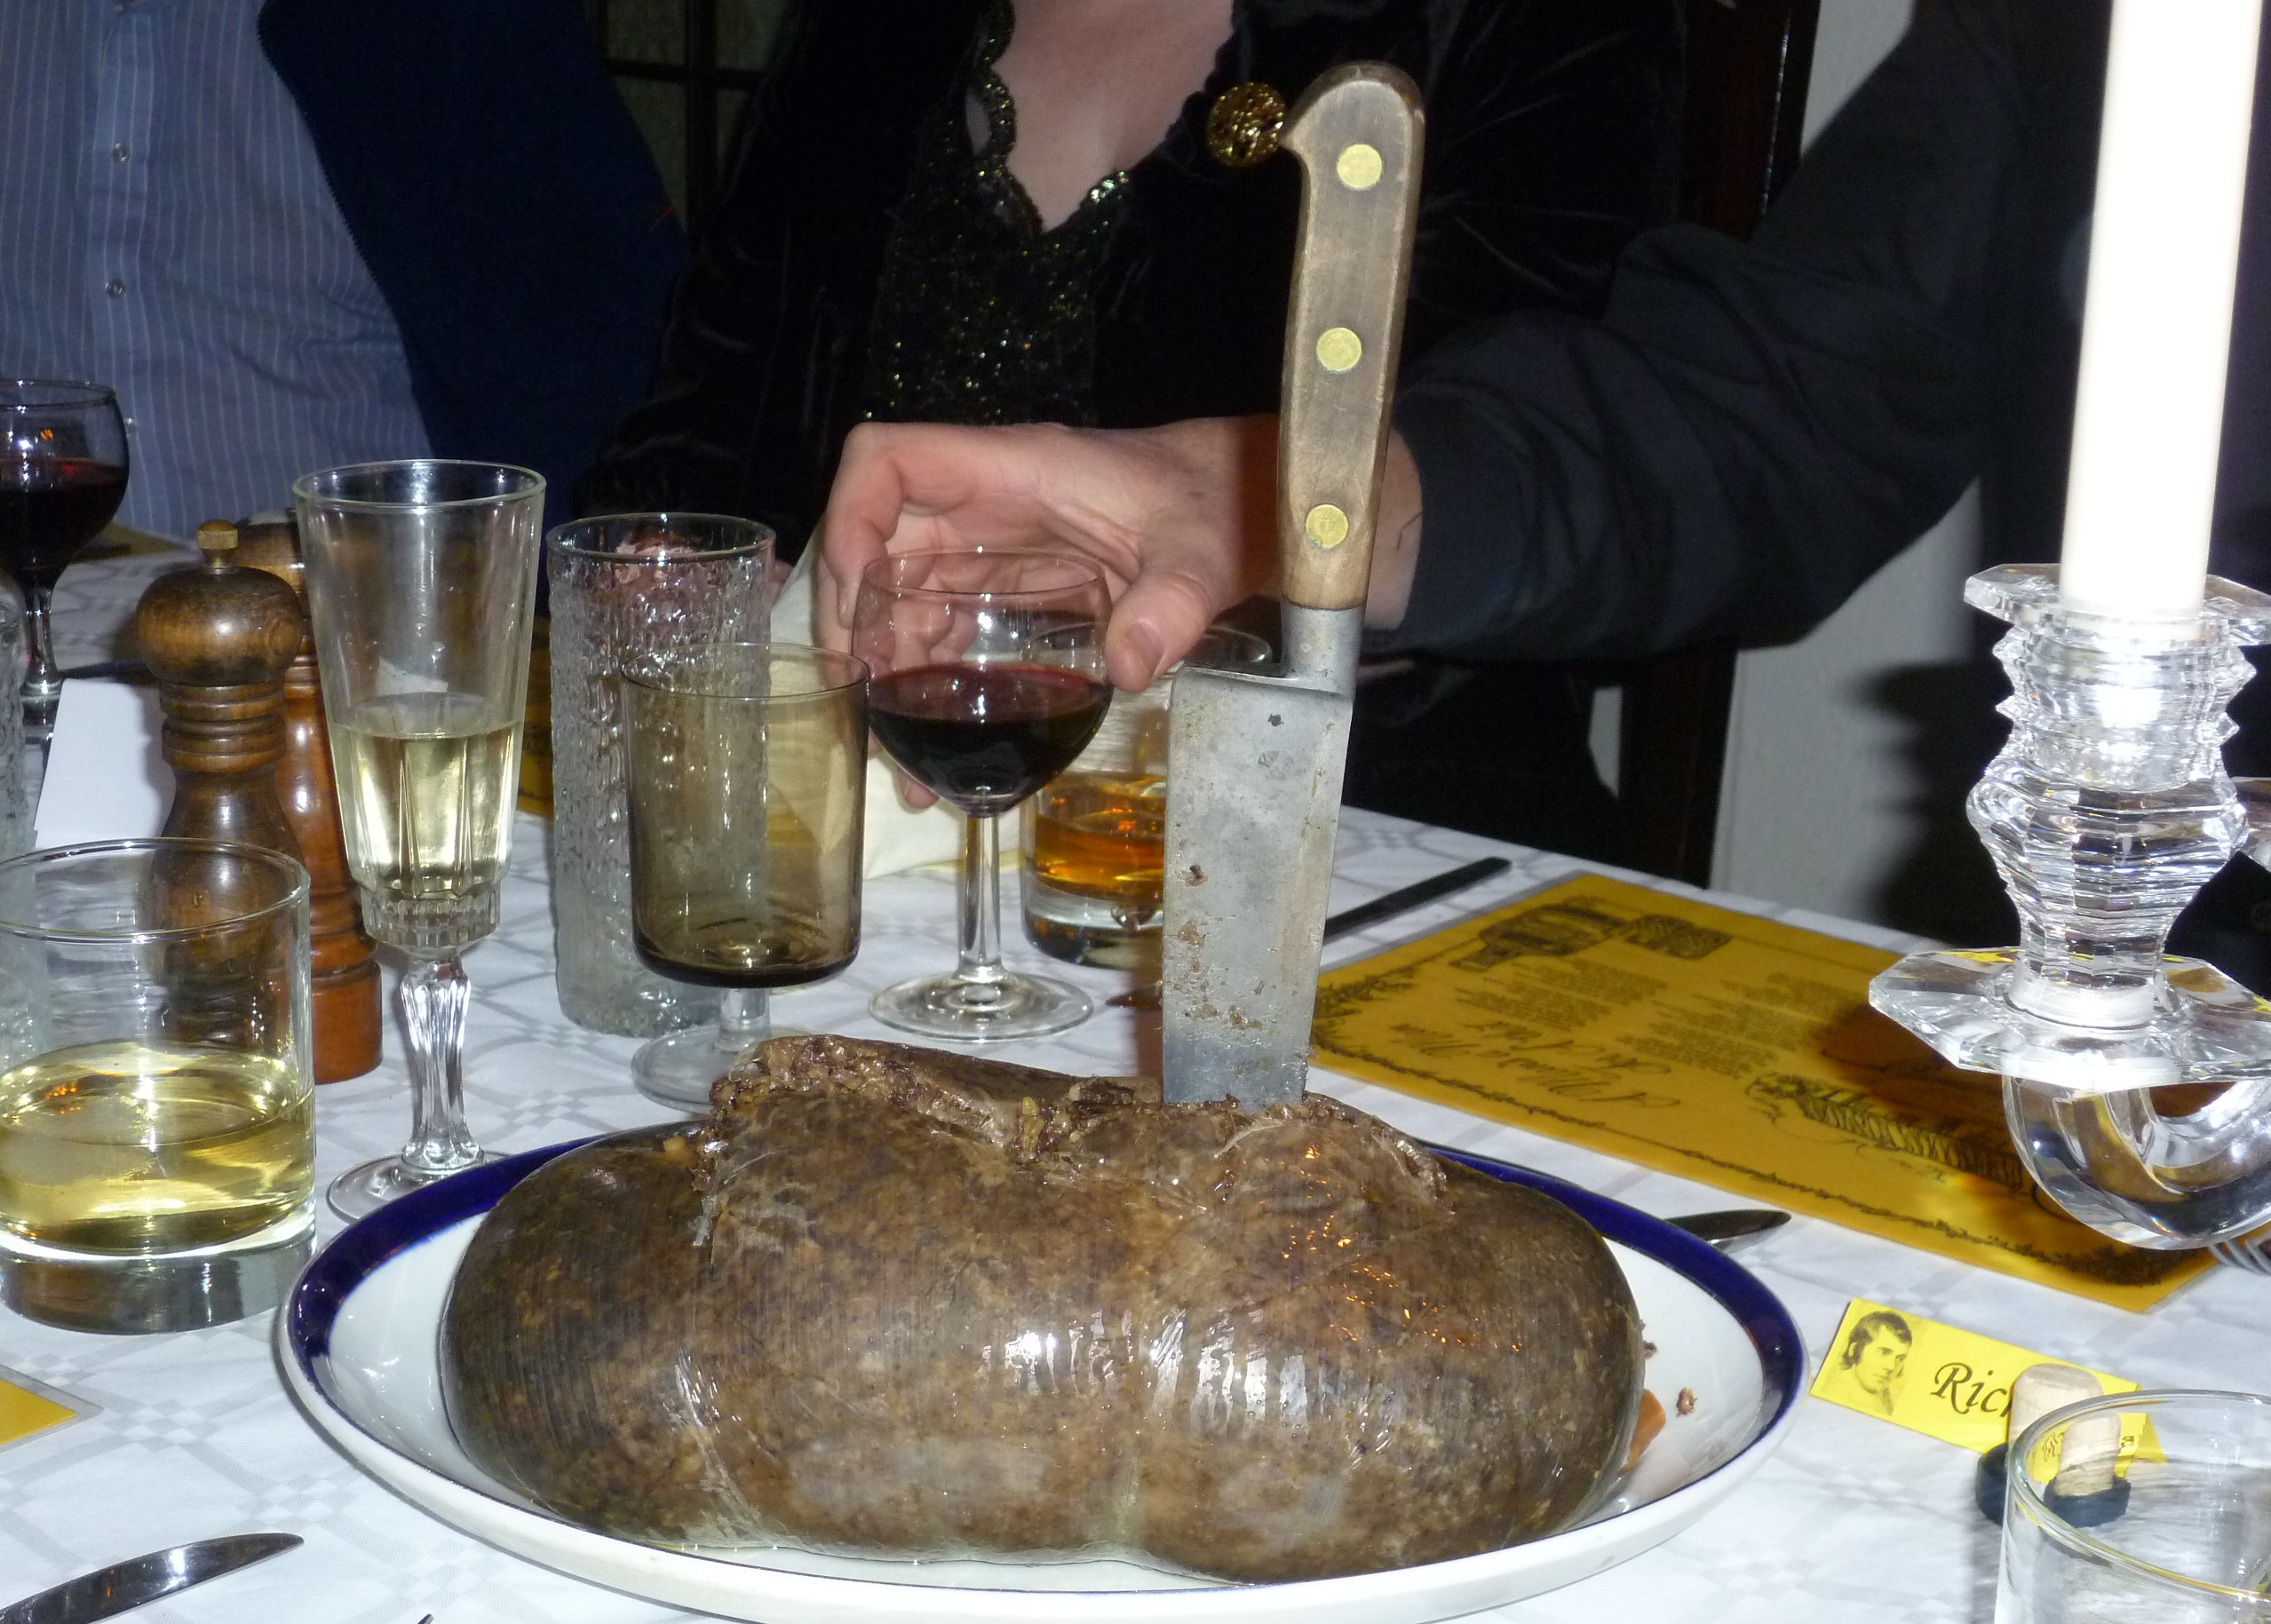 Haggis at a Burns Supper